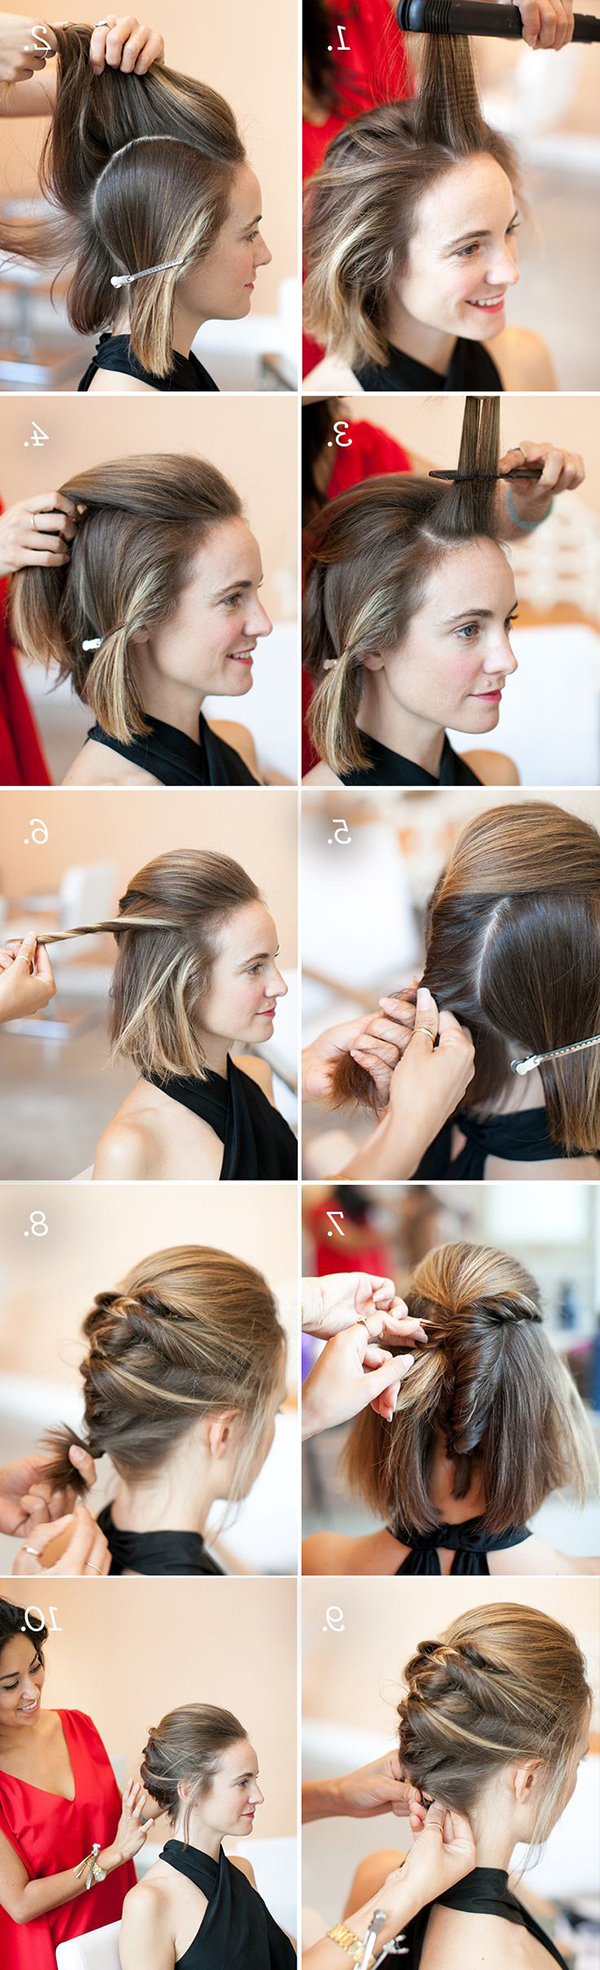 14 Gorgeous Prom Hairstyles For Short Hair – Gurl | Gurl For Short Hairstyles For Prom Updos (View 25 of 25)